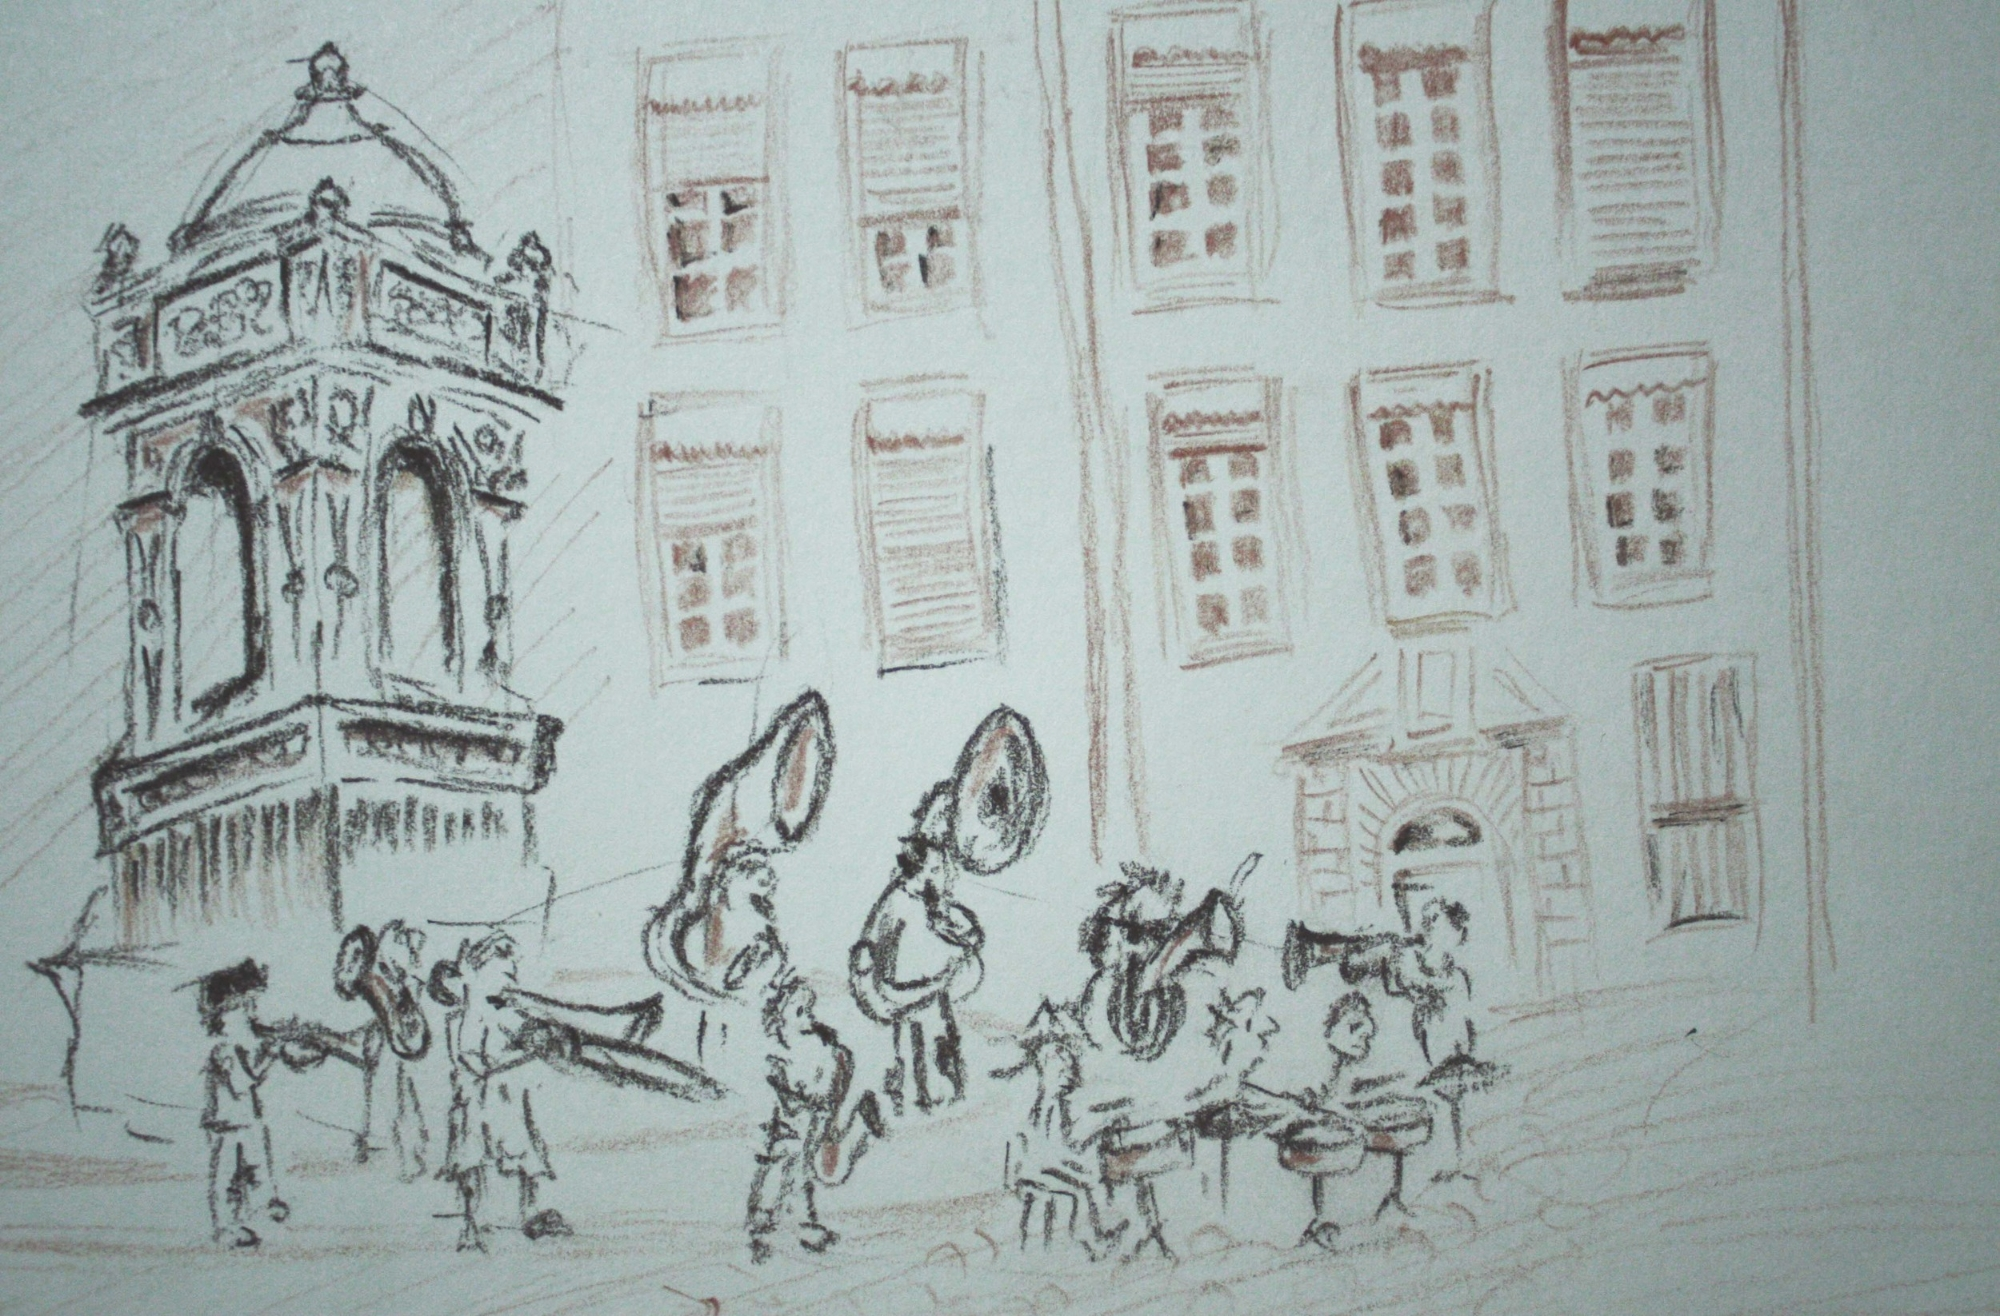 Sketch of street performers in Lyon - by J Khan (these guys were very in tune)